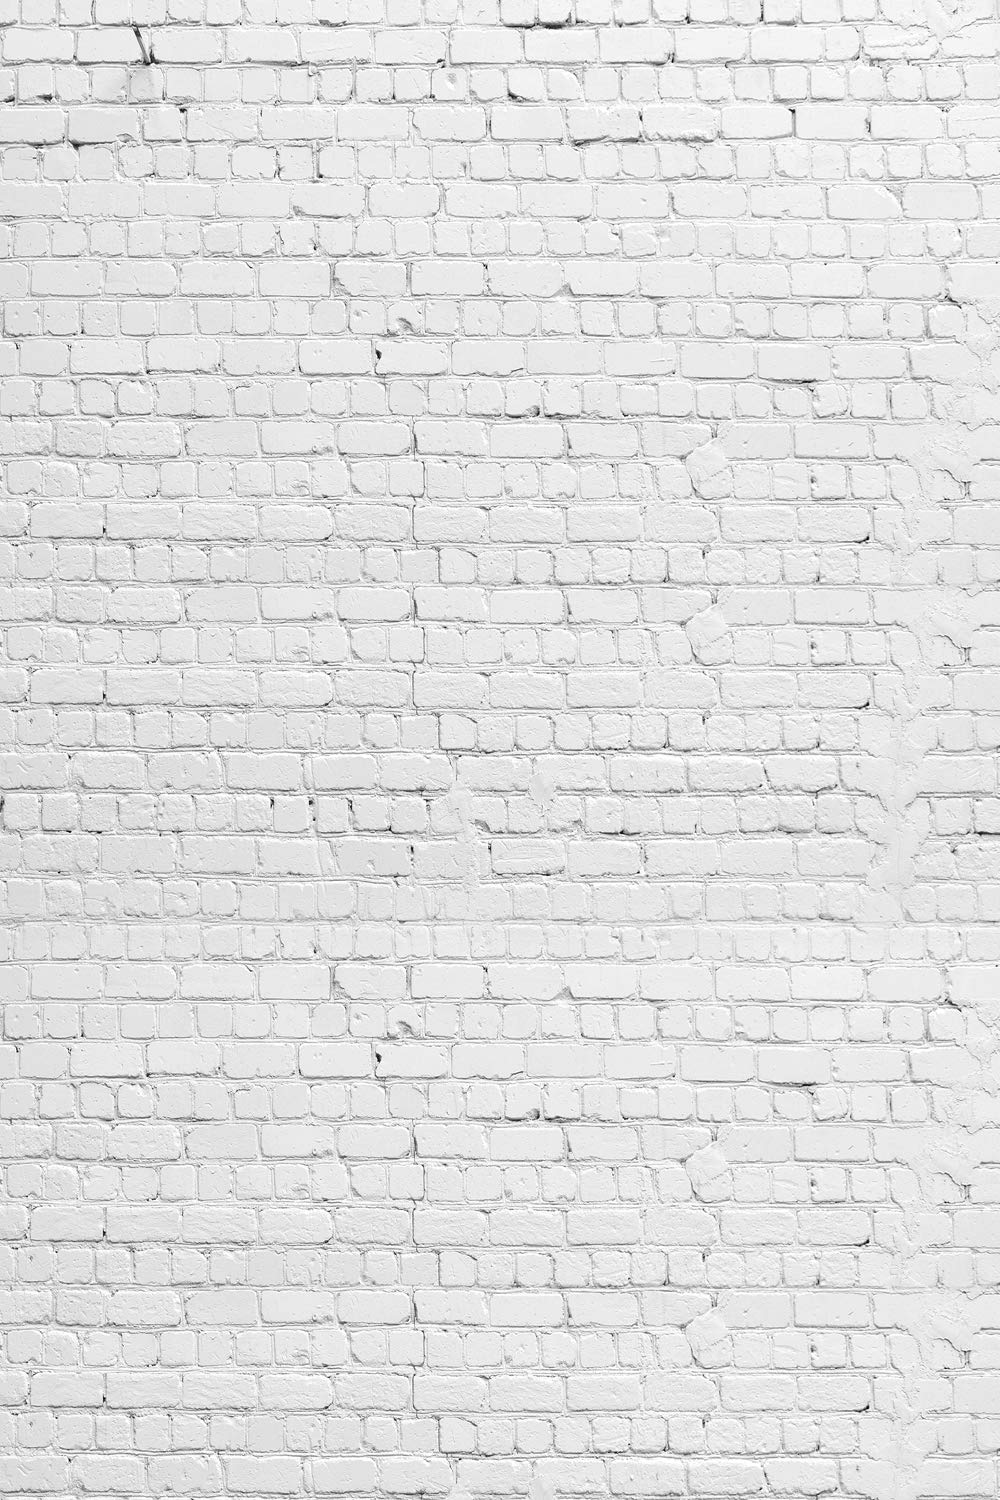 HUAYI 79'' x10ft Vintage White Brick Wall Photography Backdrop Vinyl Background for Pictures D-2504 by HUAYI